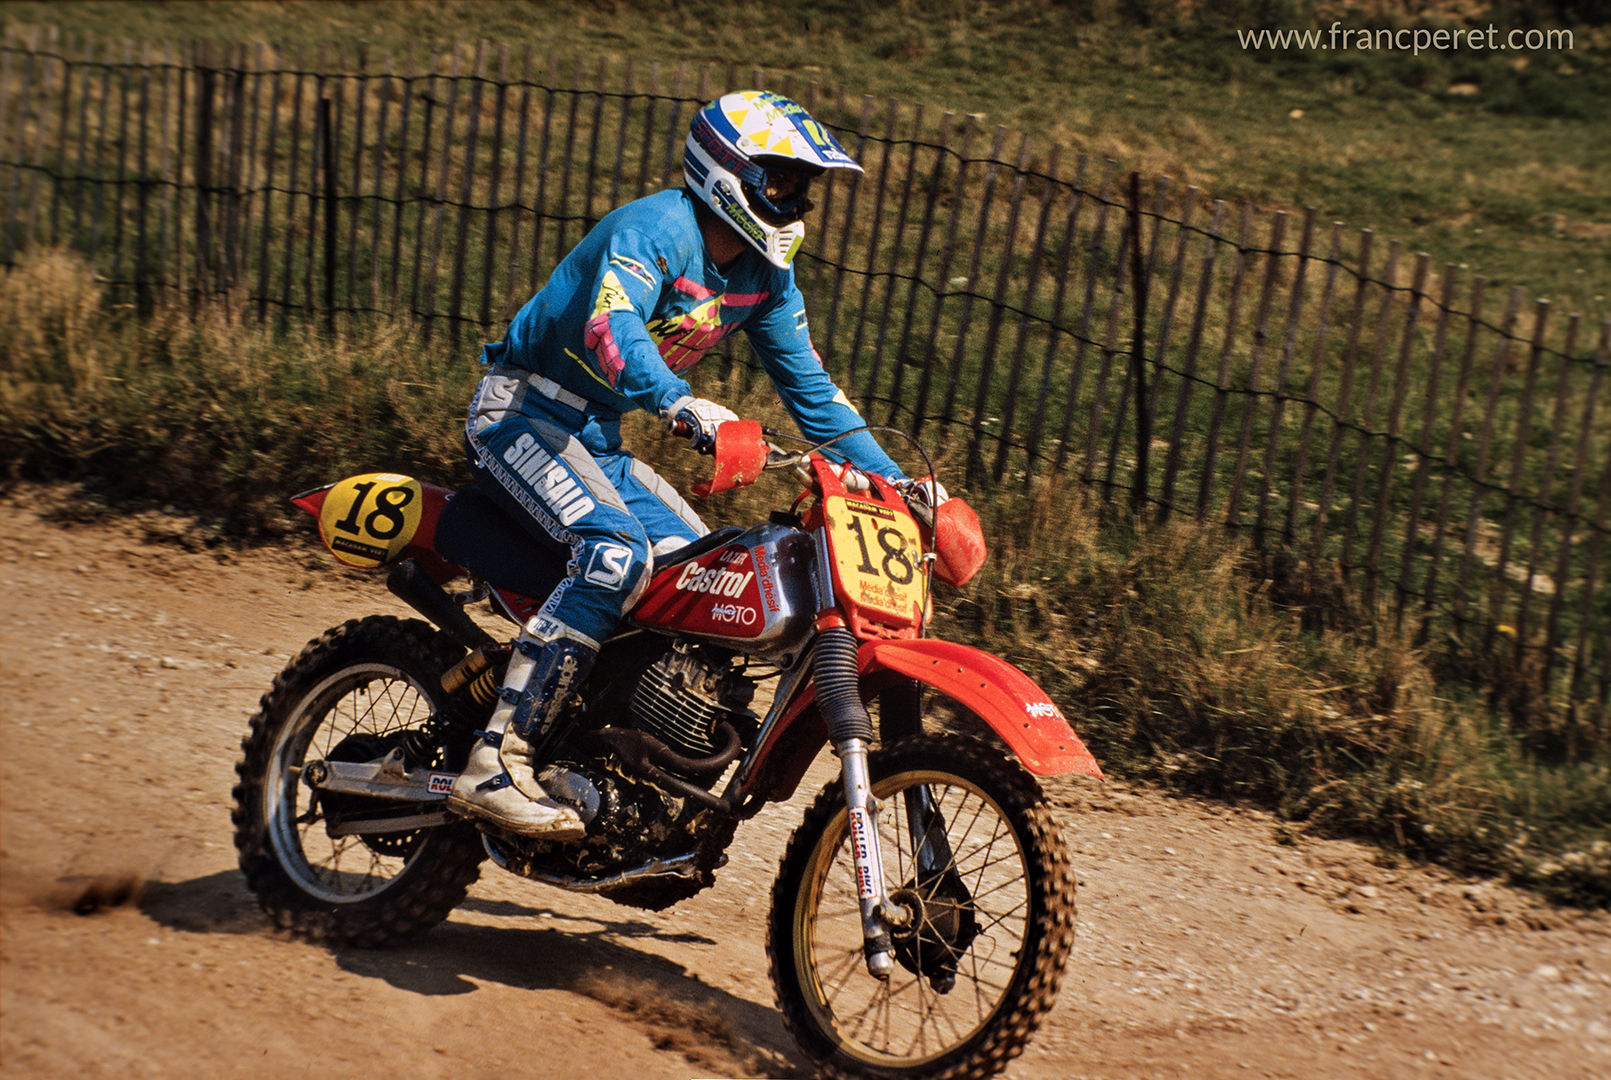 To keep fit and to experiment new sensation, I owned a bike to race on Motocross tracks